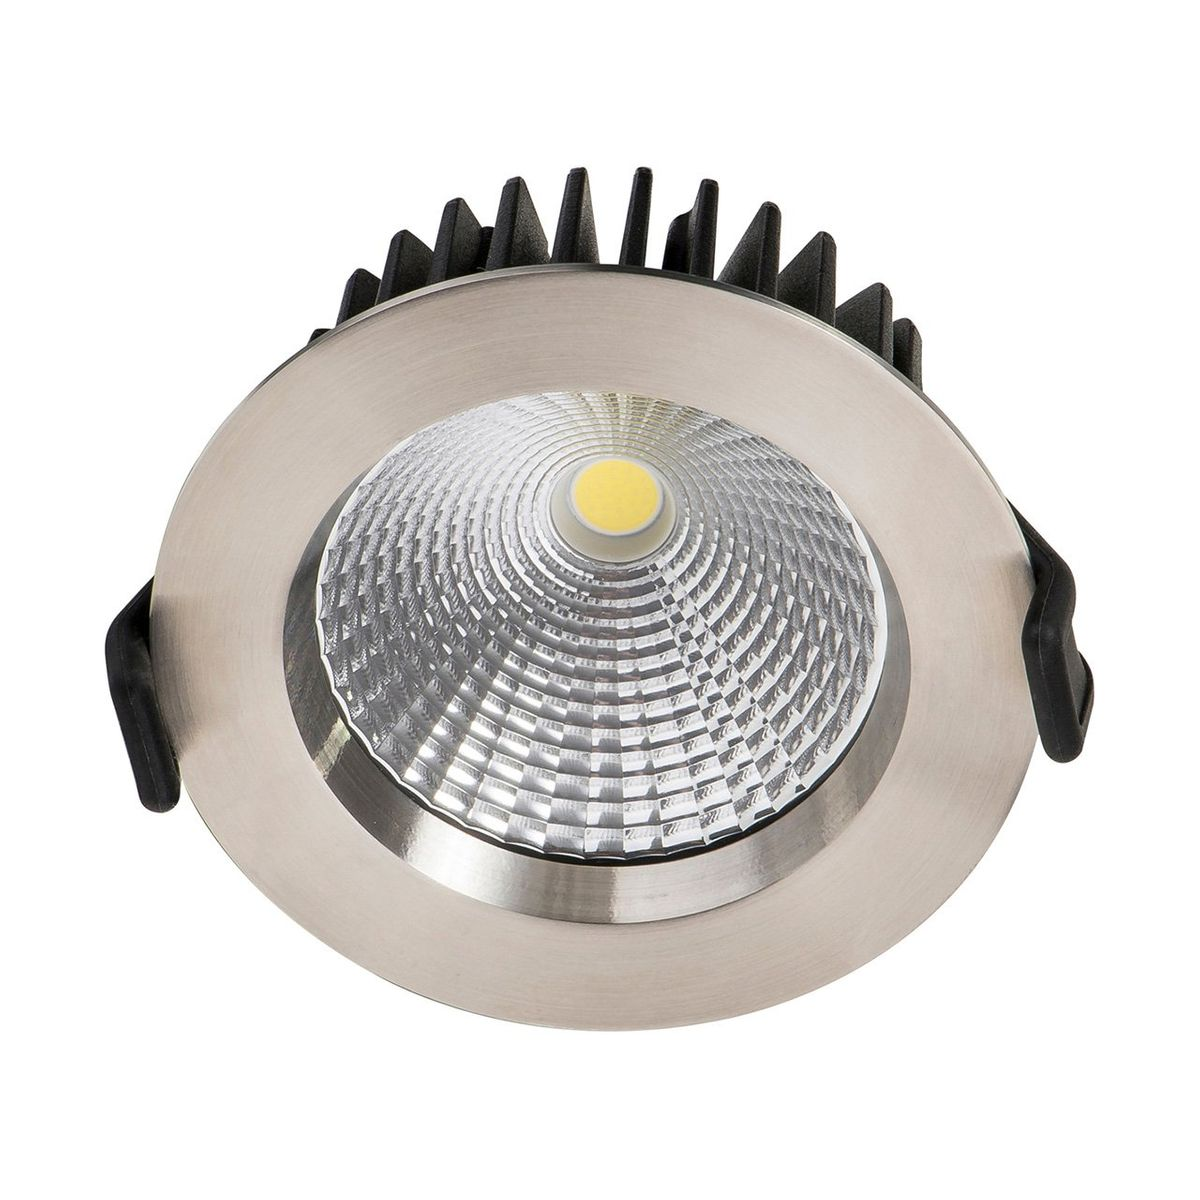 HV5530-SS316 - ORA 316 Stainless Steel Fixed LED Downlight – Bild 1